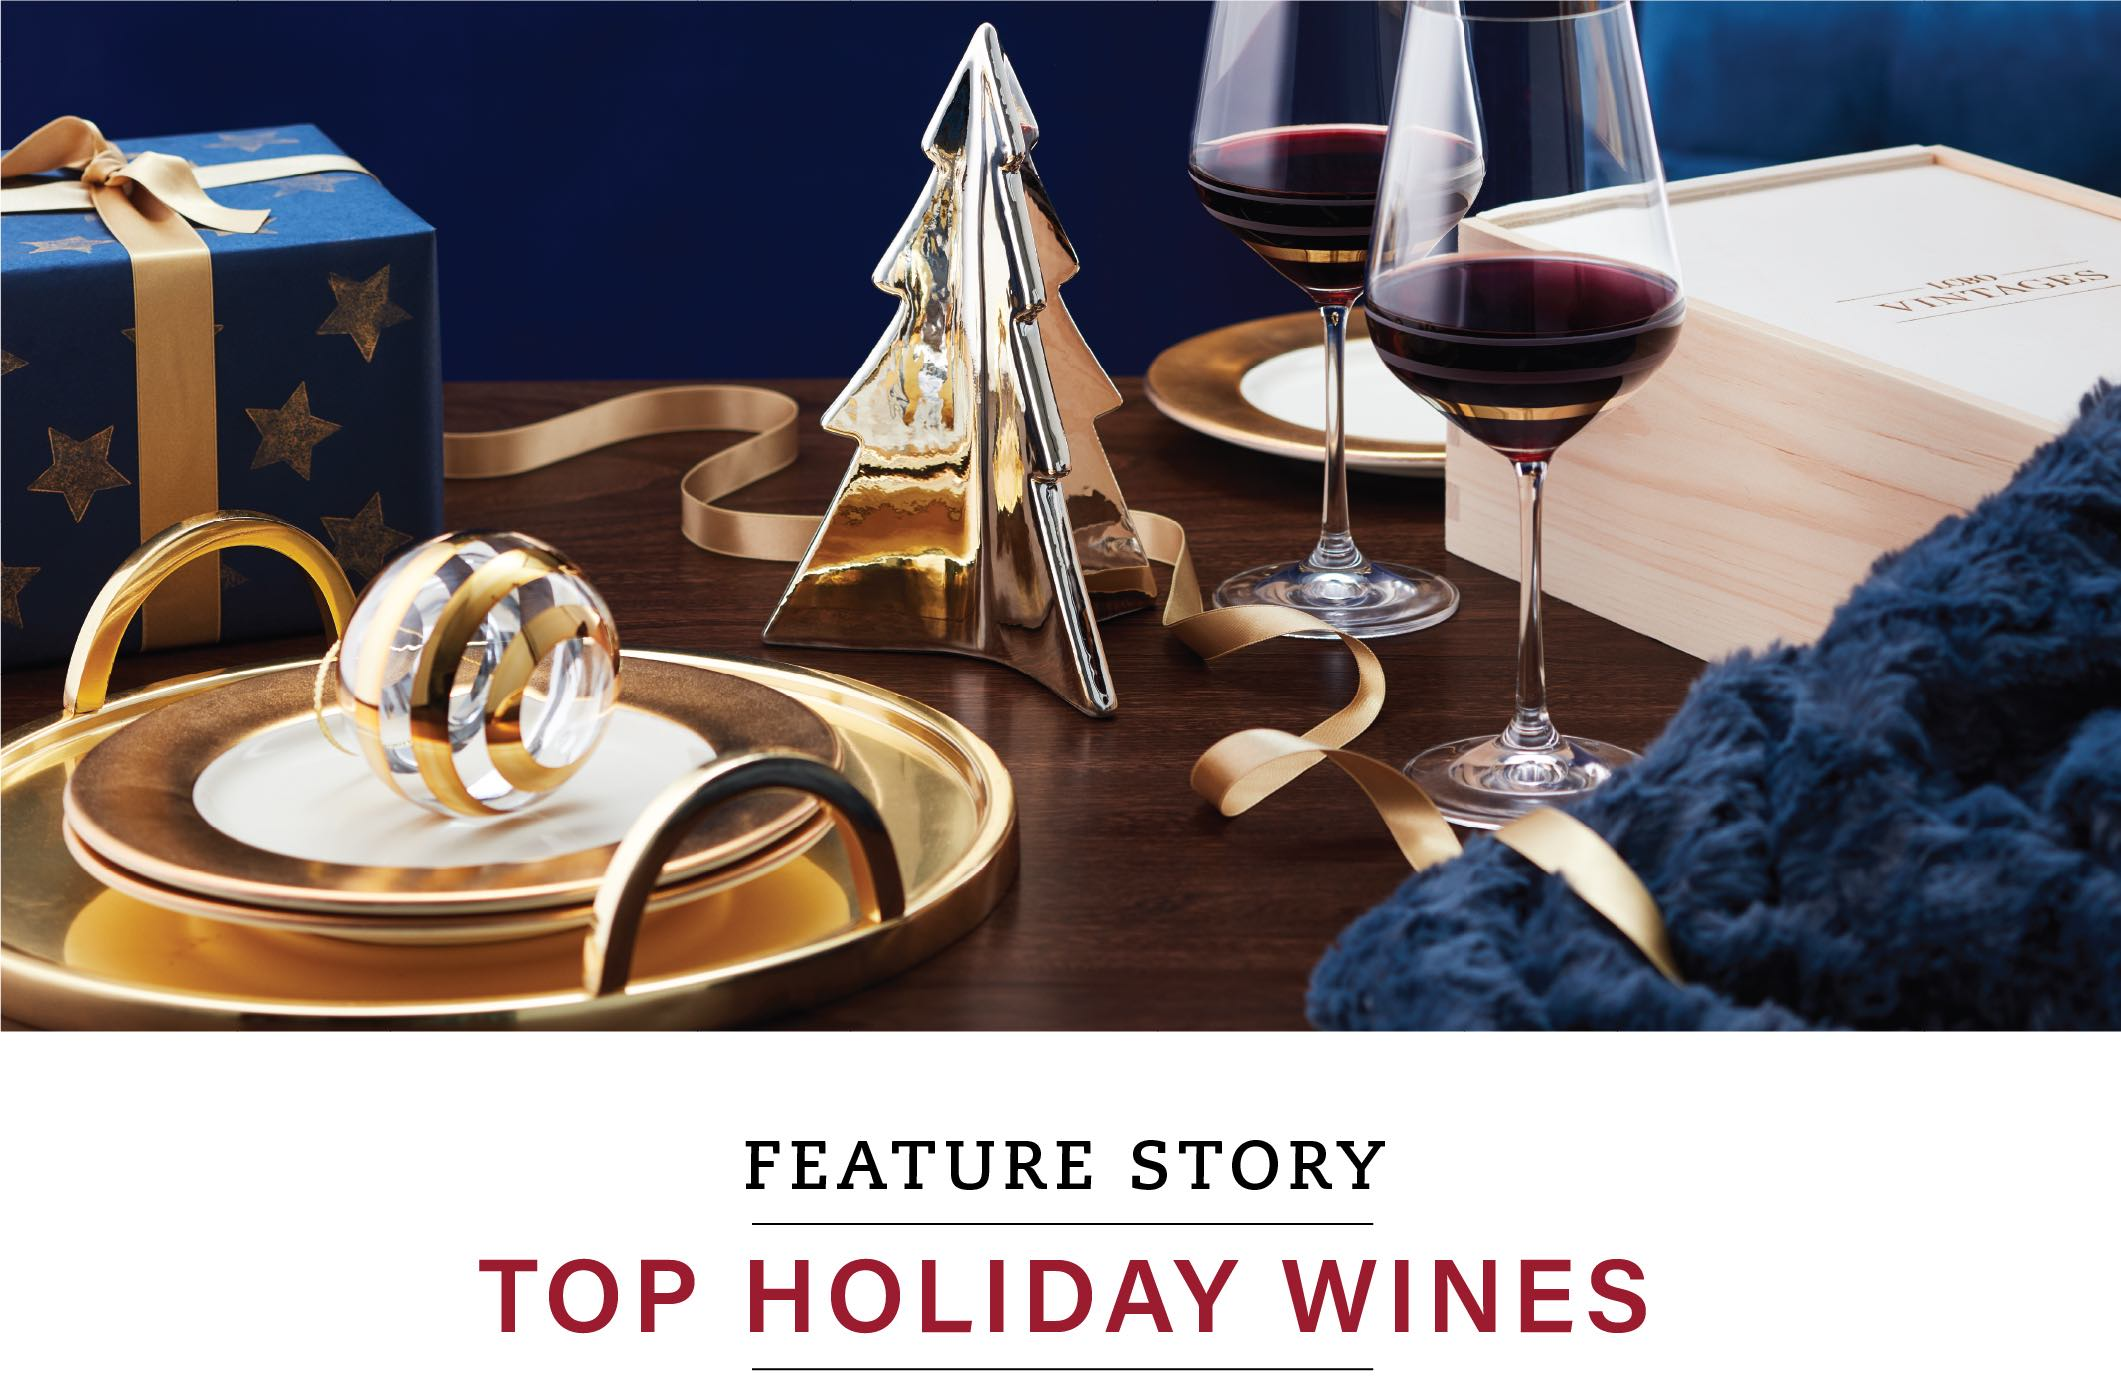 Feature Story: Top Holiday Wines